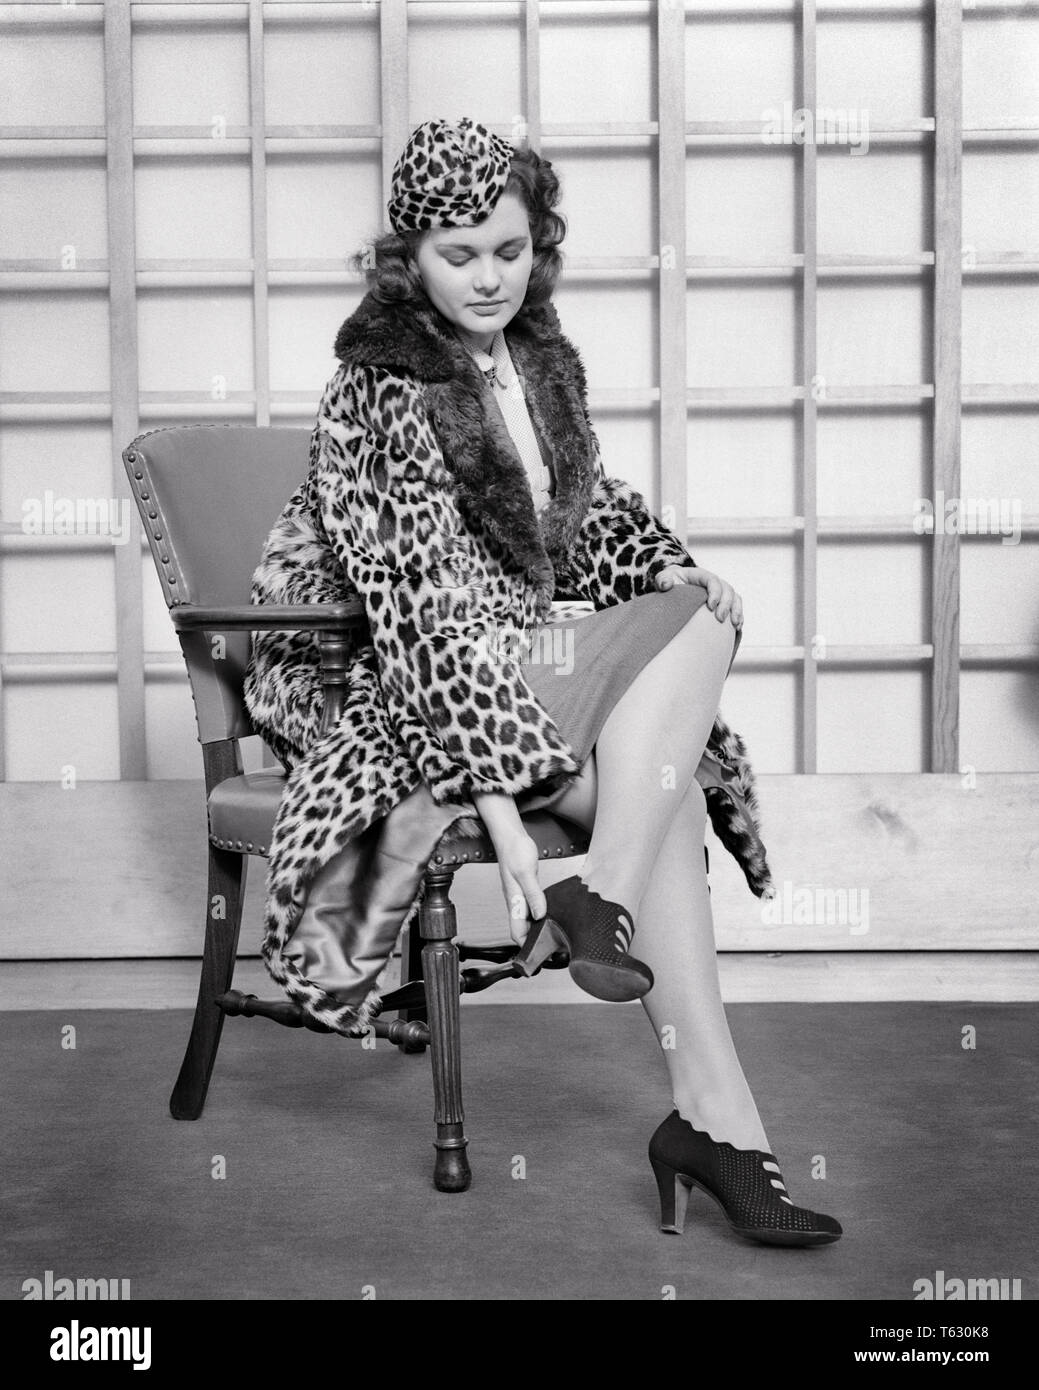 1930 1940s WOMAN WEARING LEOPARD SKIN HAT AND COAT WITH FUR TRIM TRYING ON PAIR OF HIGH HEELED SHOES SITTING IN CHAIR - s7325 HAR001 HARS COPY SPACE FULL-LENGTH HALF-LENGTH LADIES PERSONS SKIN B&W SHOPPER BRUNETTE SHOPPERS DISCOVERY STYLES AND TRYING TRIM HEELED PELT STYLISH LEOPARD SKIN PUTTING ON TRYING ON FASHIONS FURS PAINFUL YOUNG ADULT WOMAN BLACK AND WHITE CAUCASIAN ETHNICITY HAR001 OLD FASHIONED SORE FEET - Stock Image